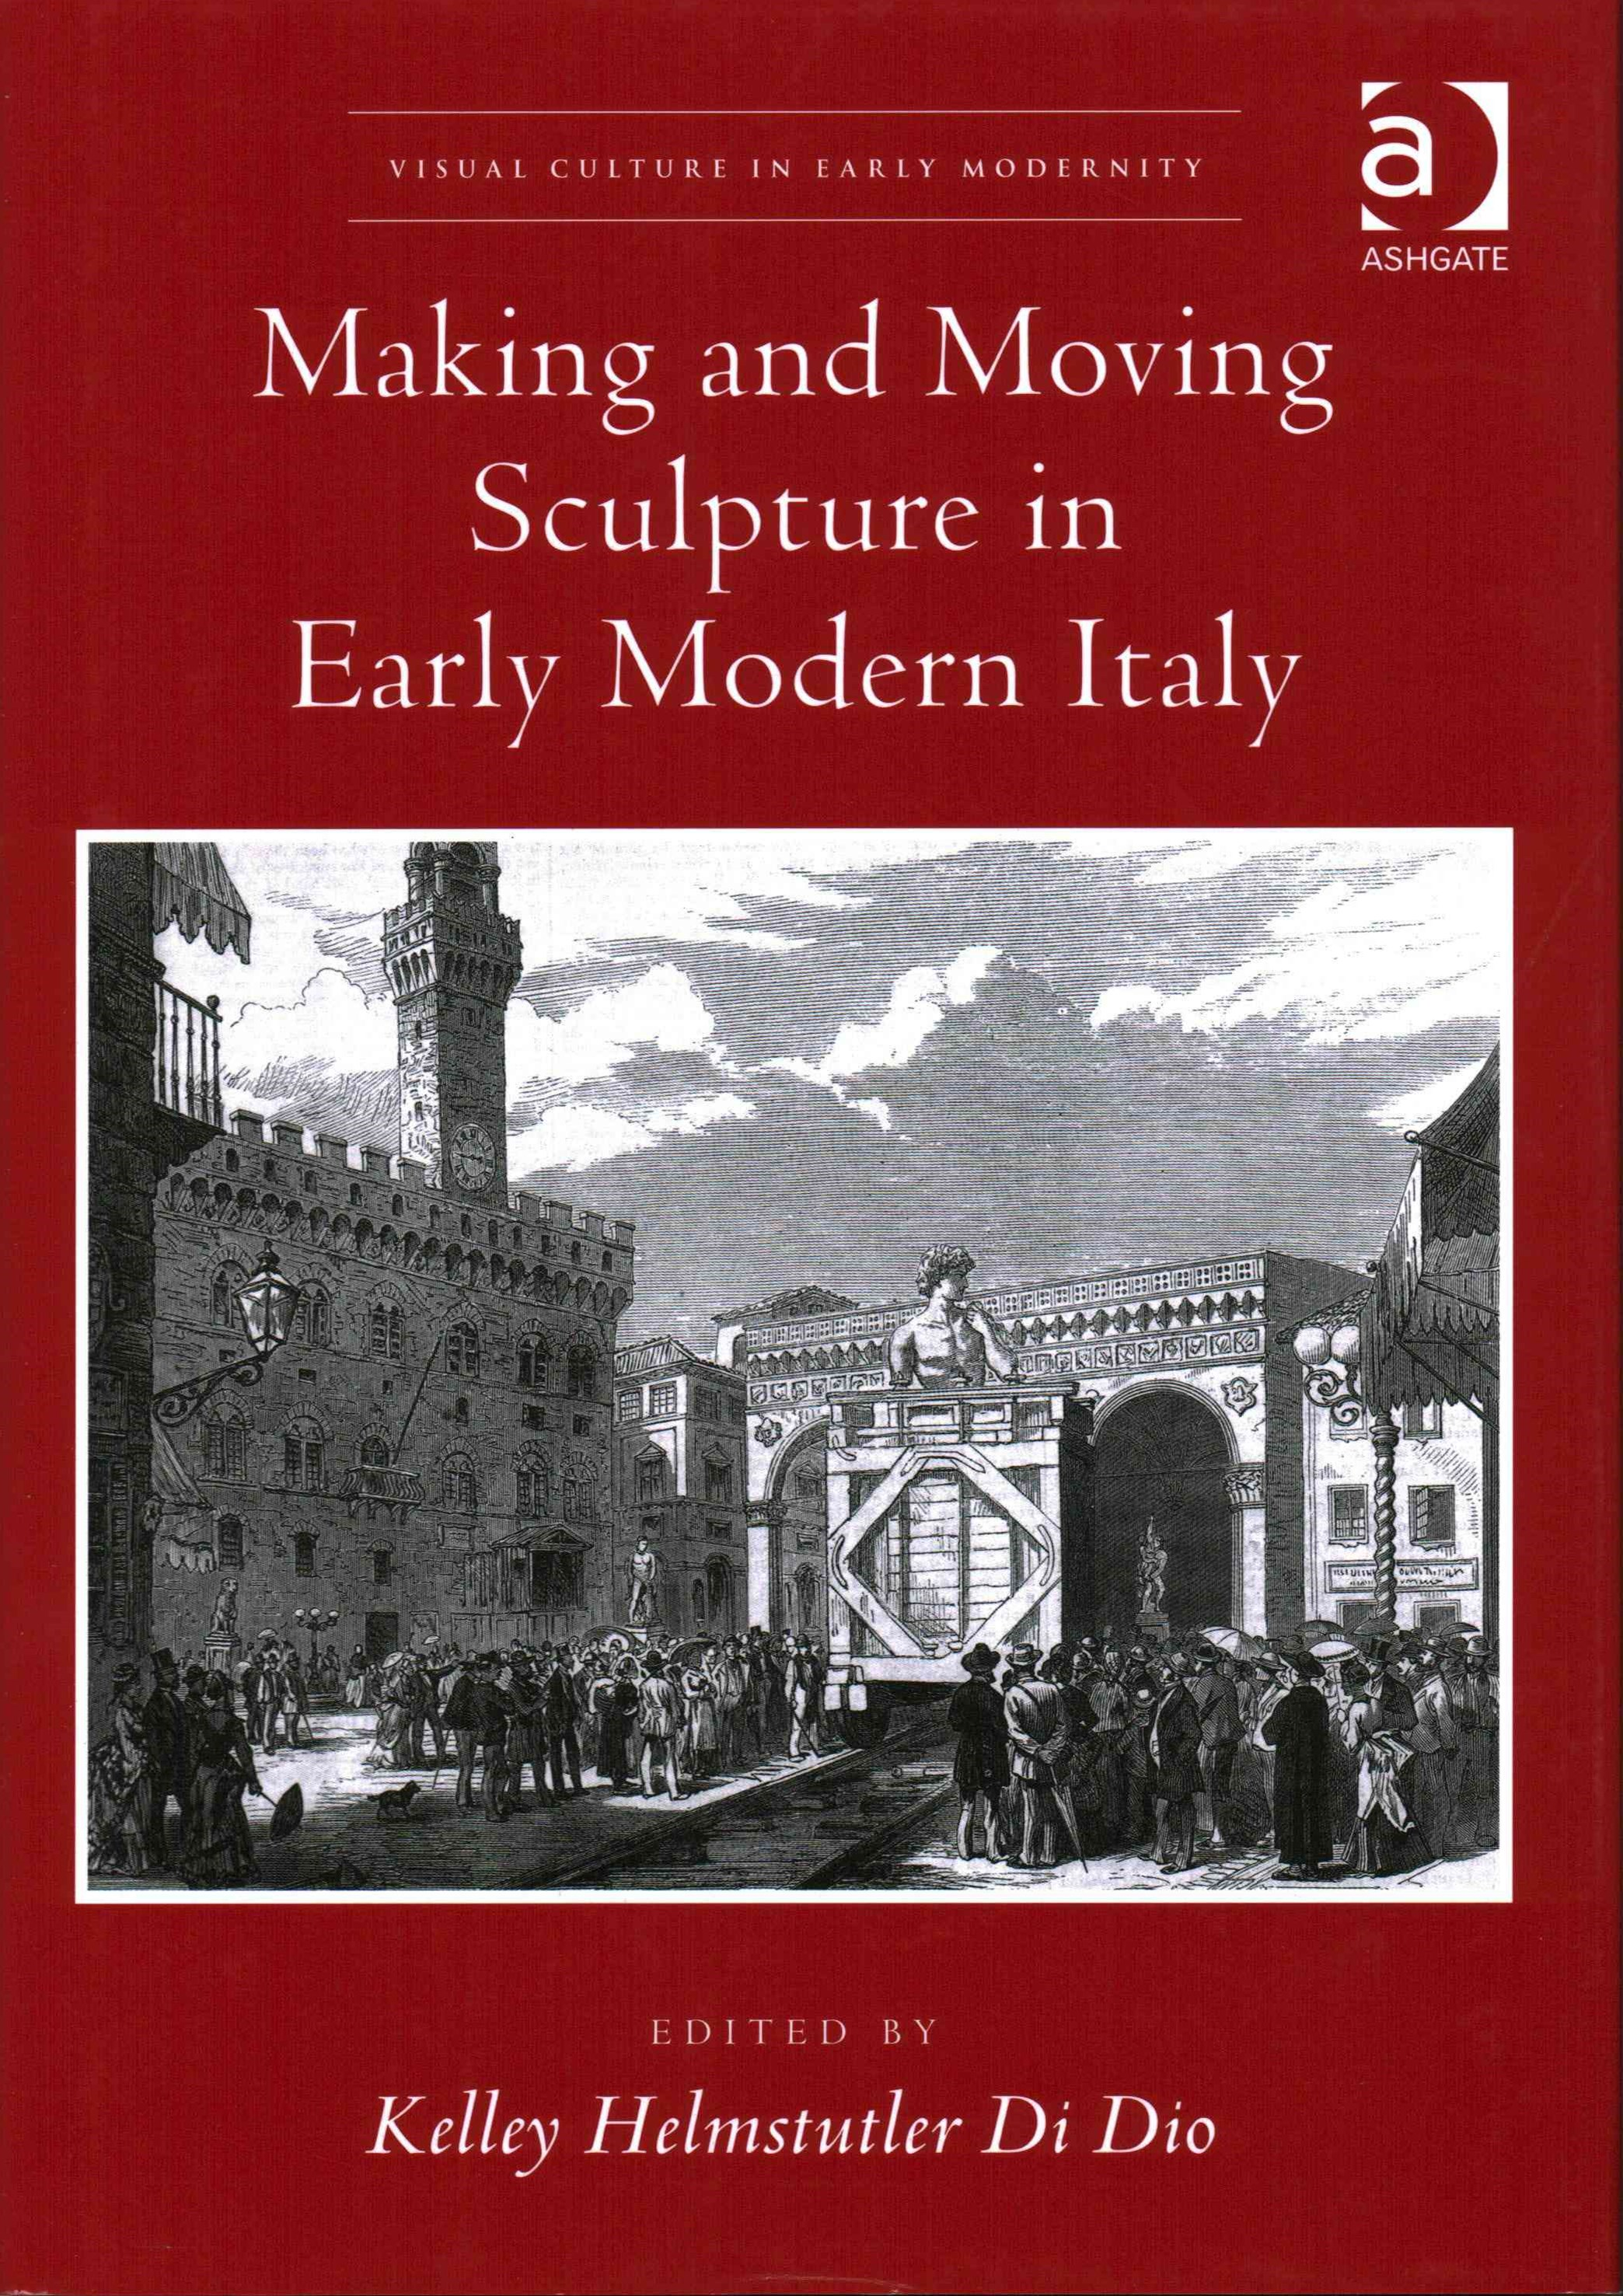 Making and Moving Sculpture in Early Modern Italy